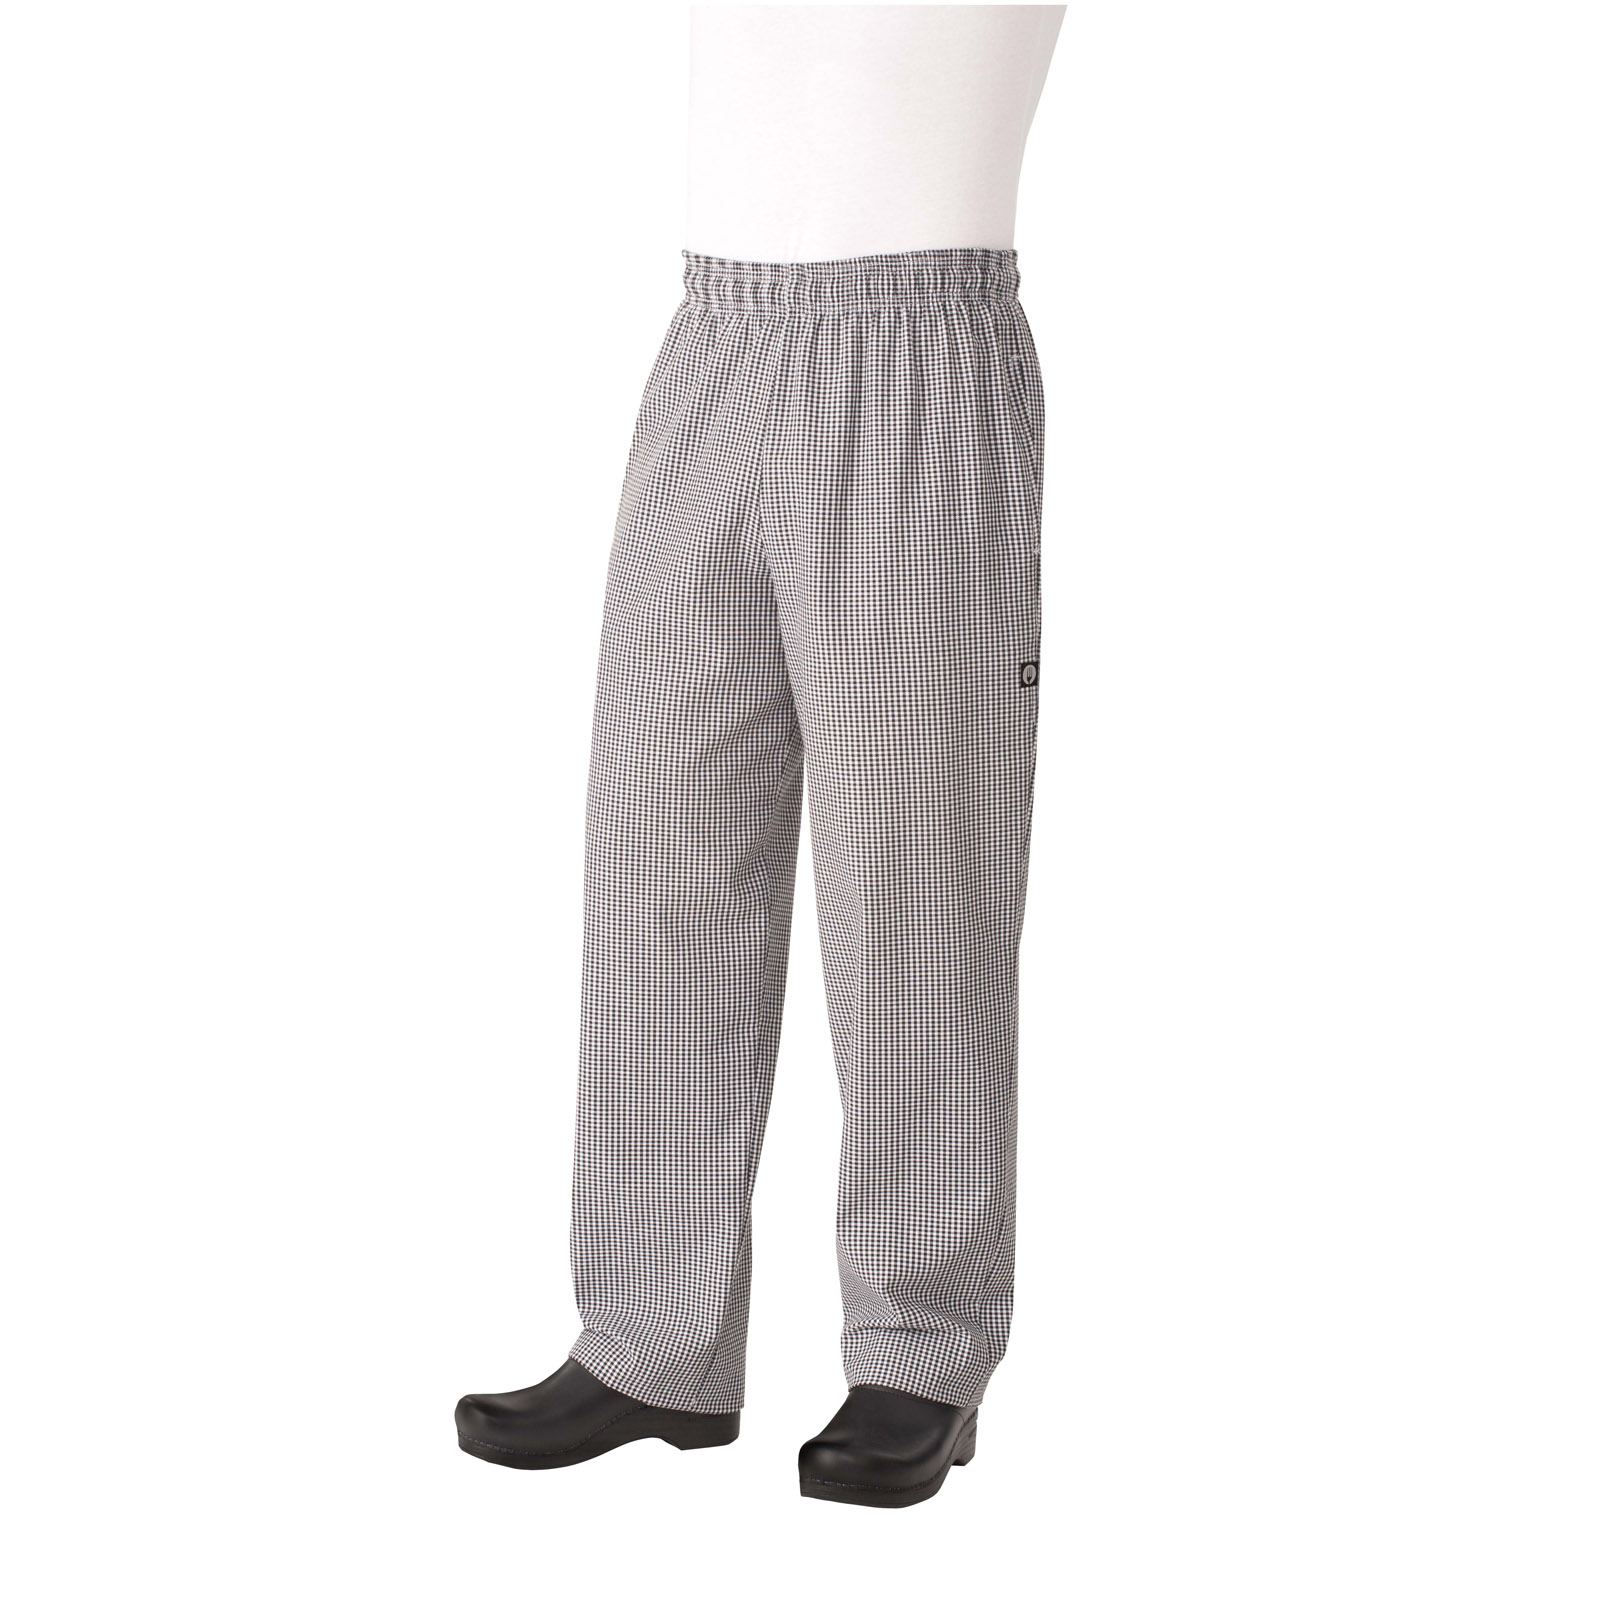 Chef Works NBCP0005XL chef's pants